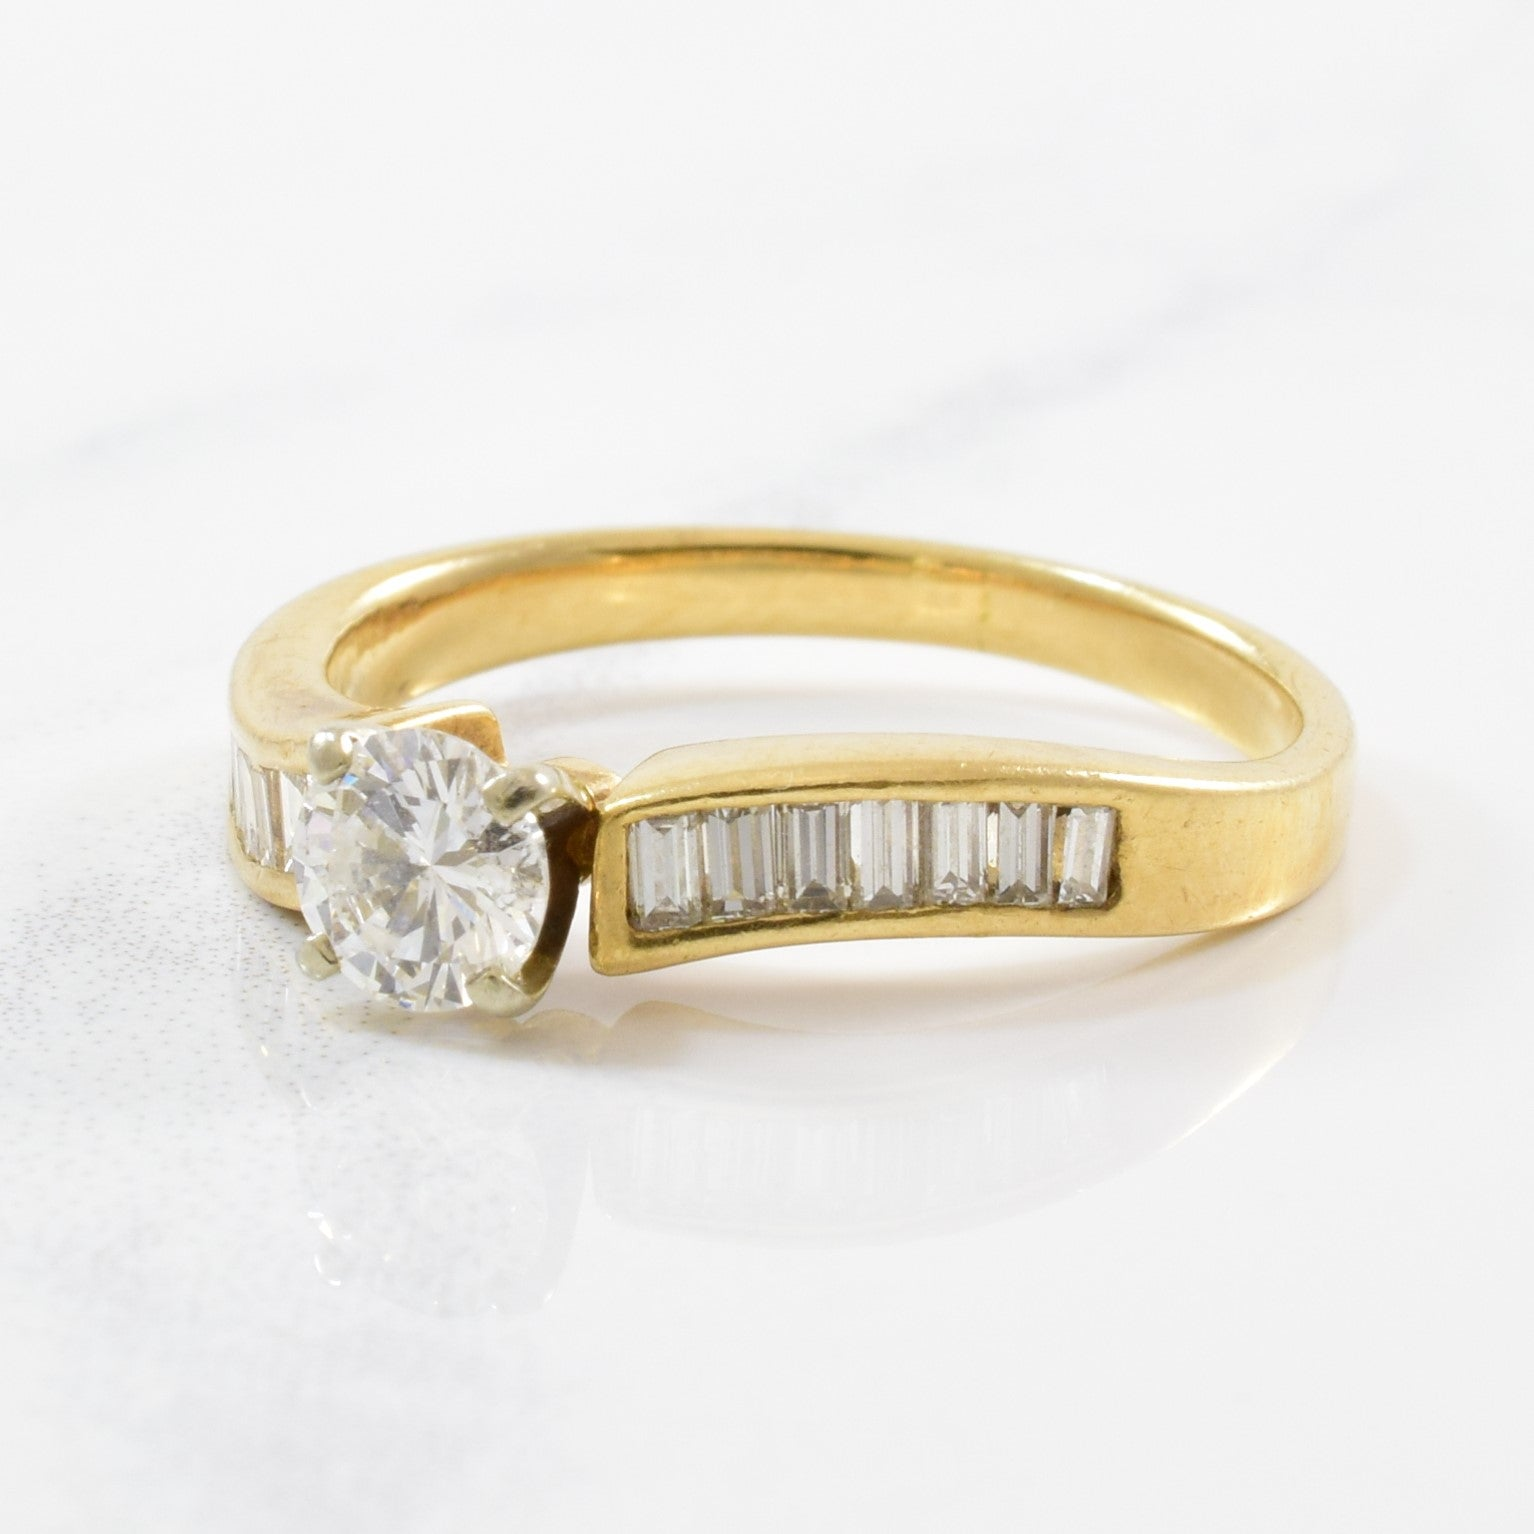 Diamond Engagement Ring With Baguette Cut Accents | 0.57ctw | SZ 4.5 |